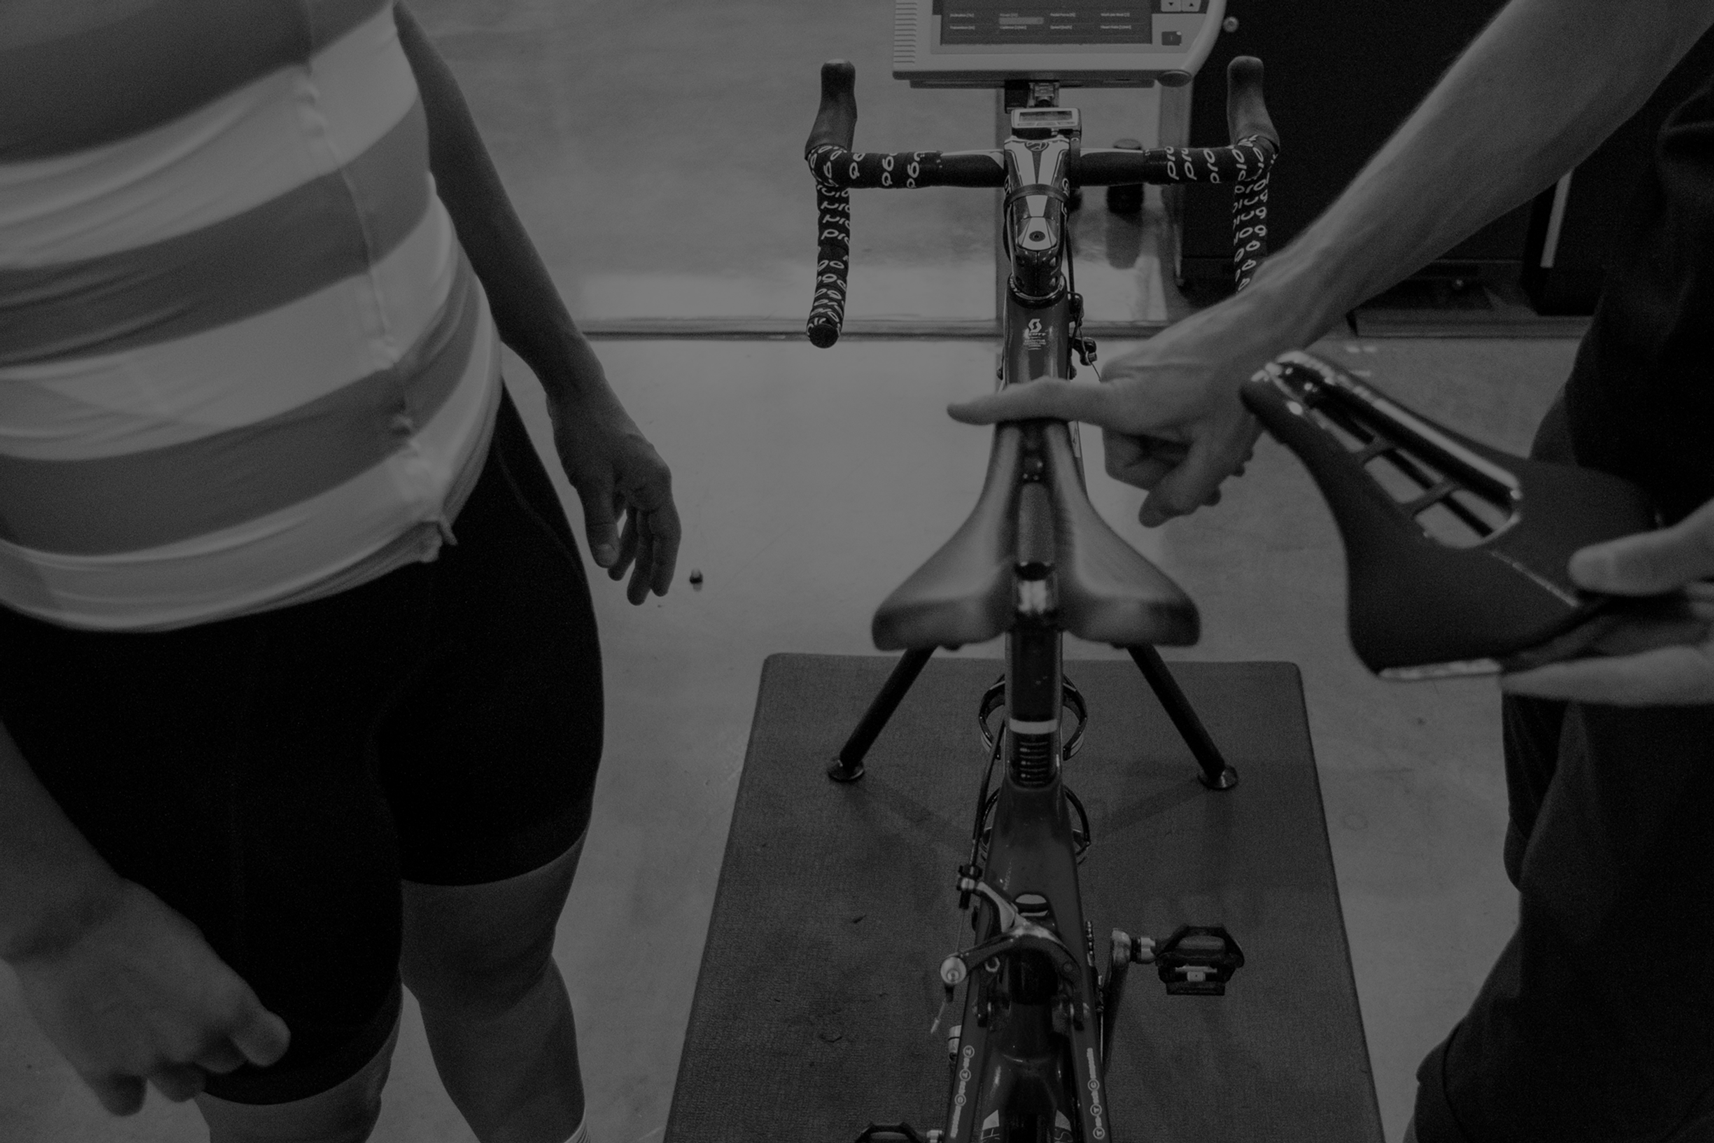 _ - Product ergonomics is central to successfully dealing with musculoskeletal injuries and promoting the long-term sustainability of cycling. We use these same ergonomic concepts to enhance performance outcomes associated with your optimised setup.